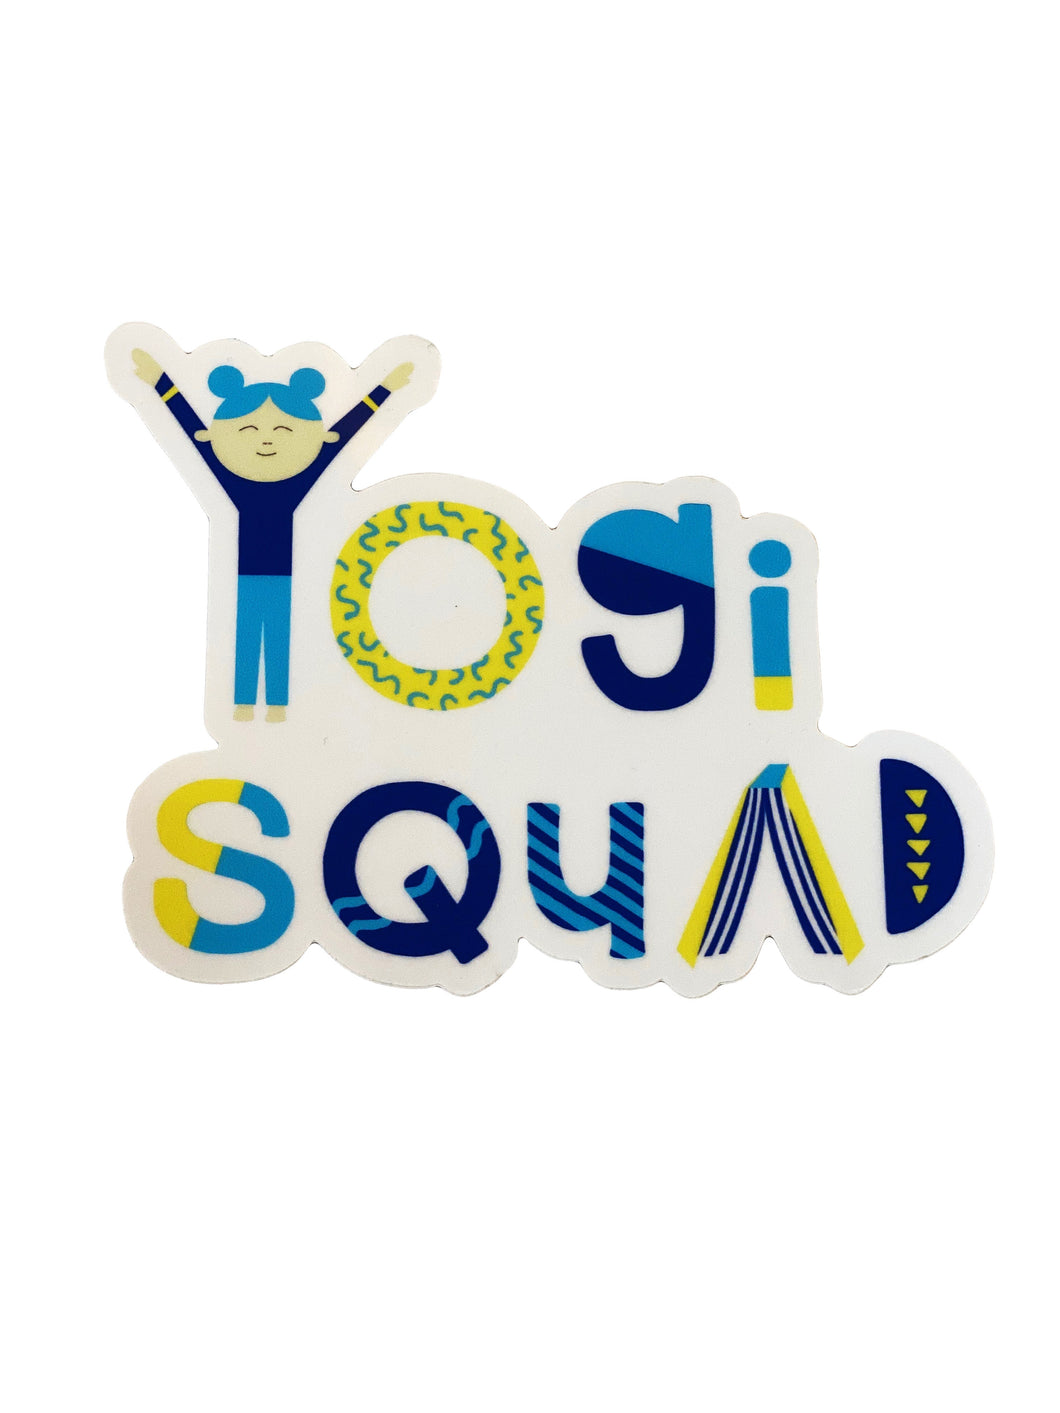 Yogi Squad Sticker